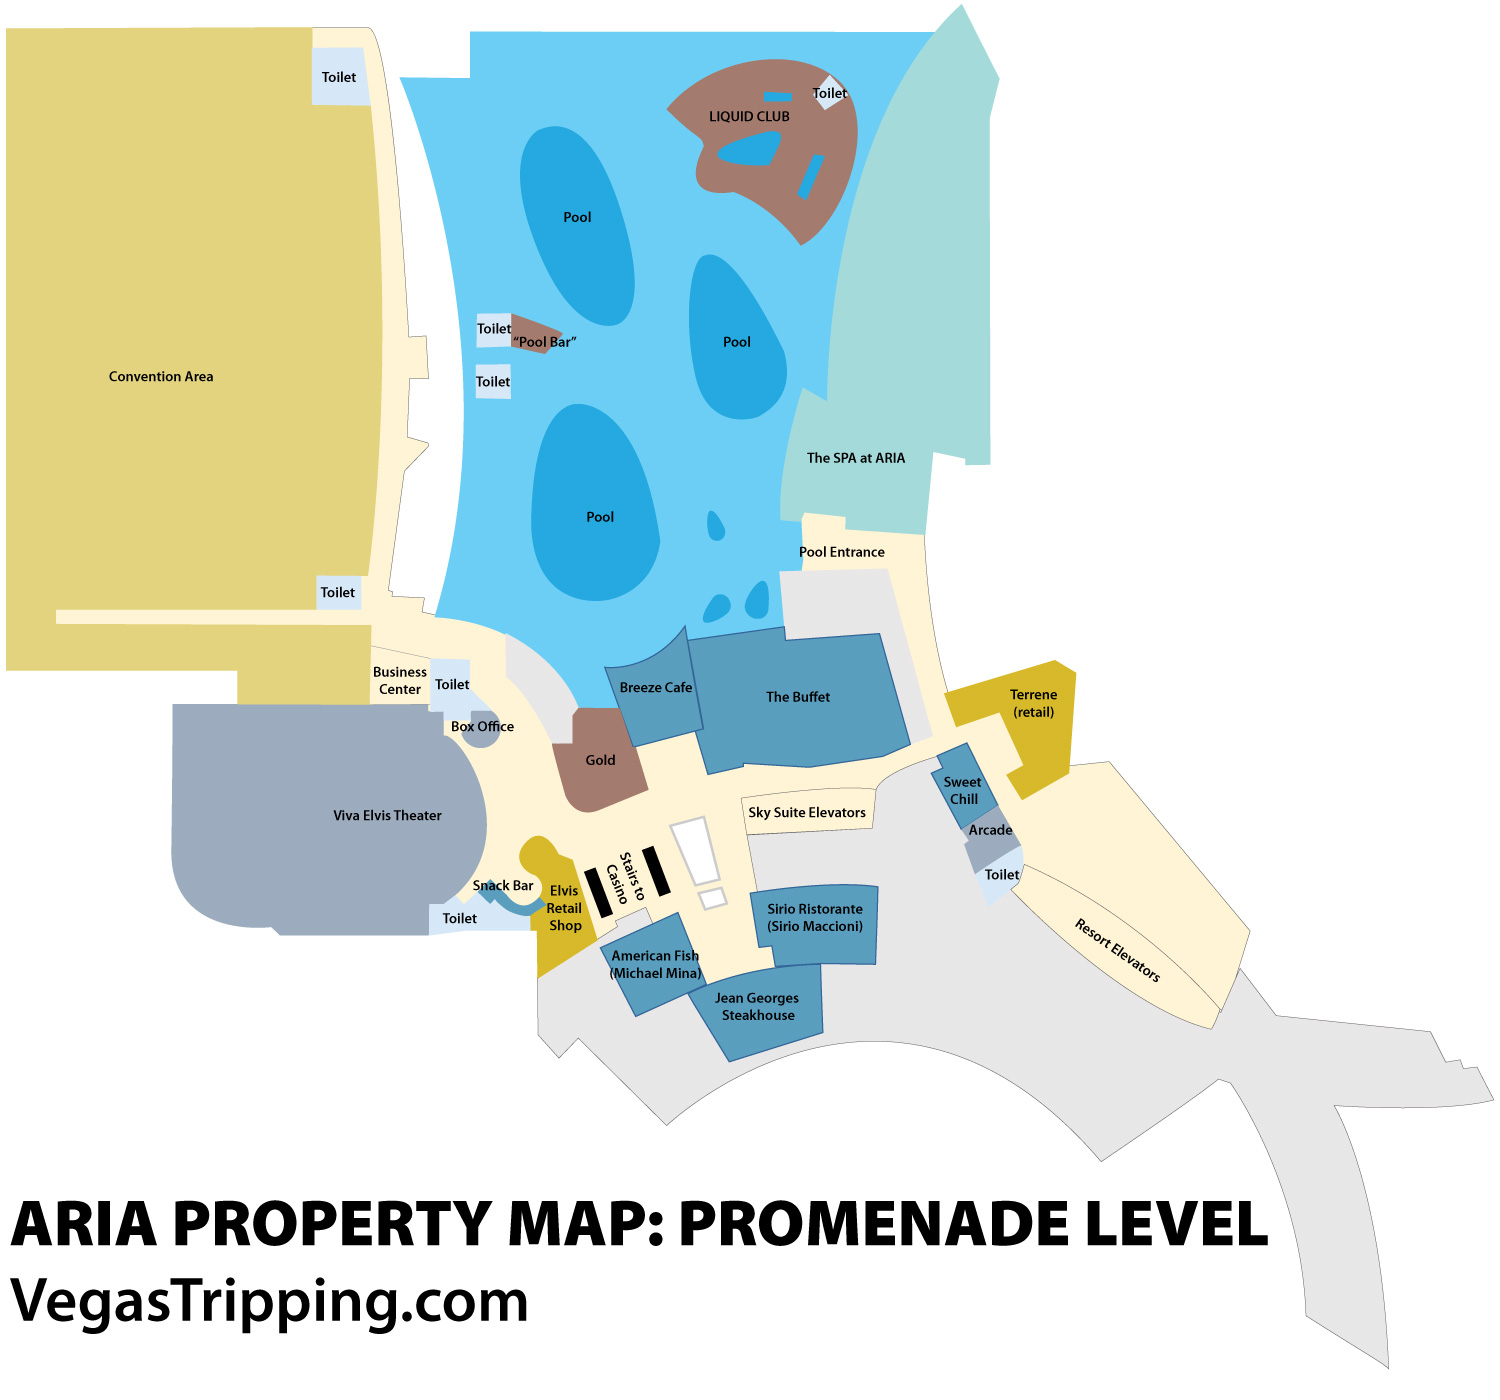 The ARIA Property Map VegasTripping